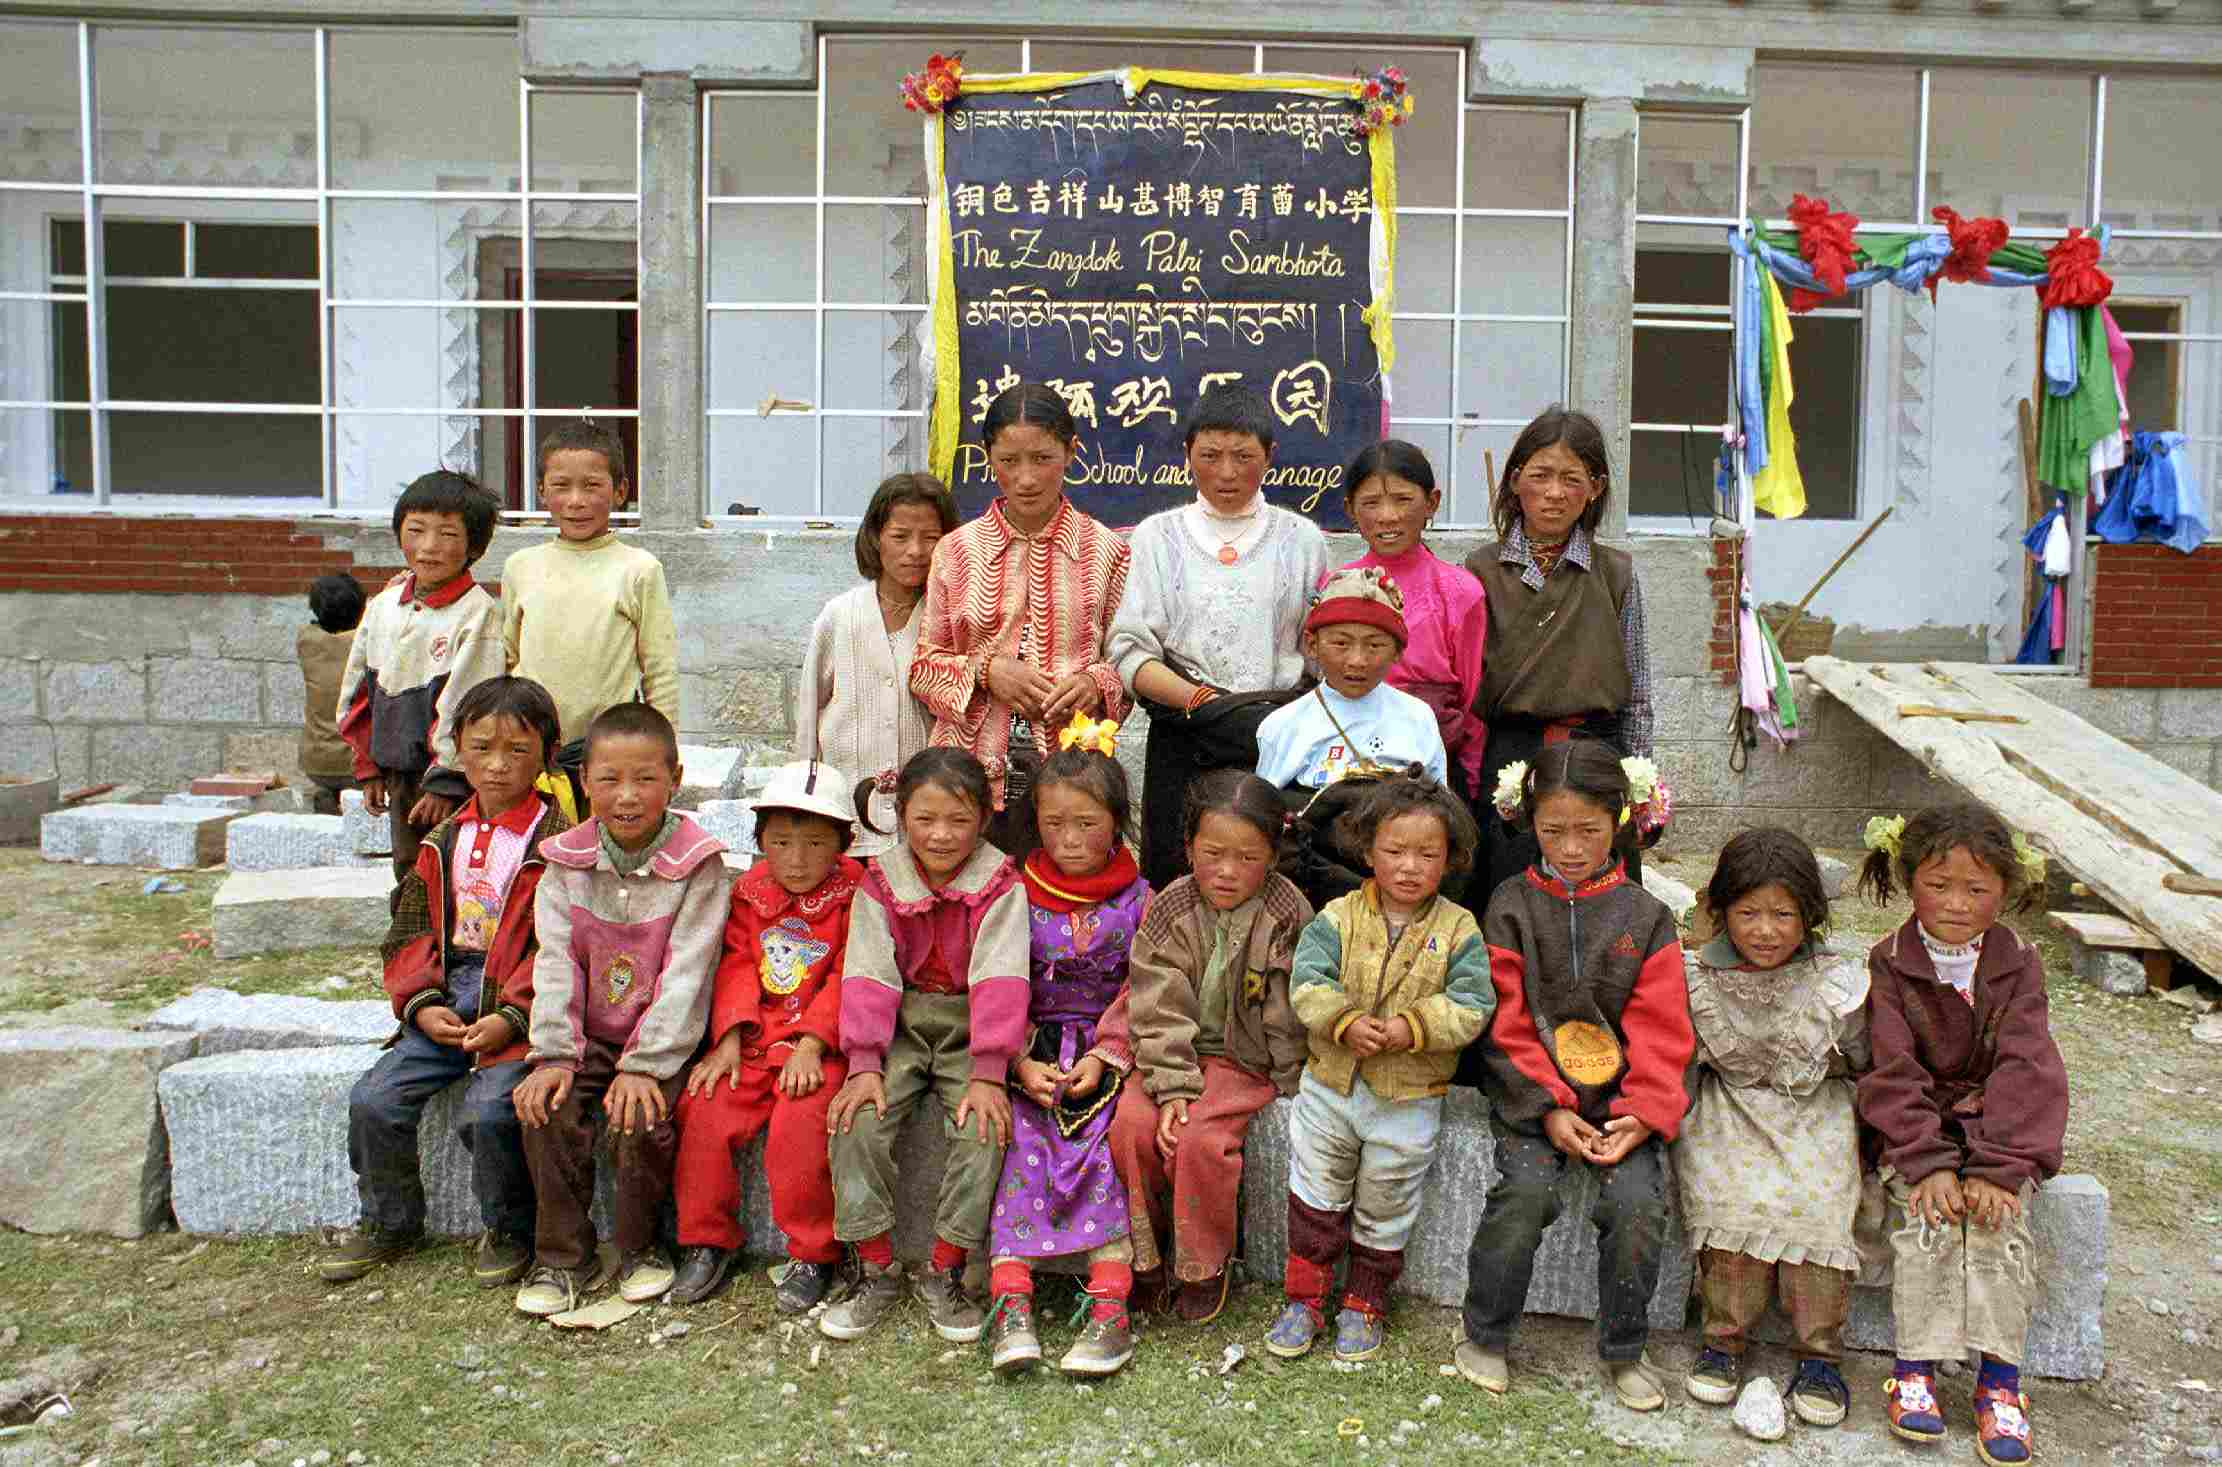 School children at inauguration in 2002